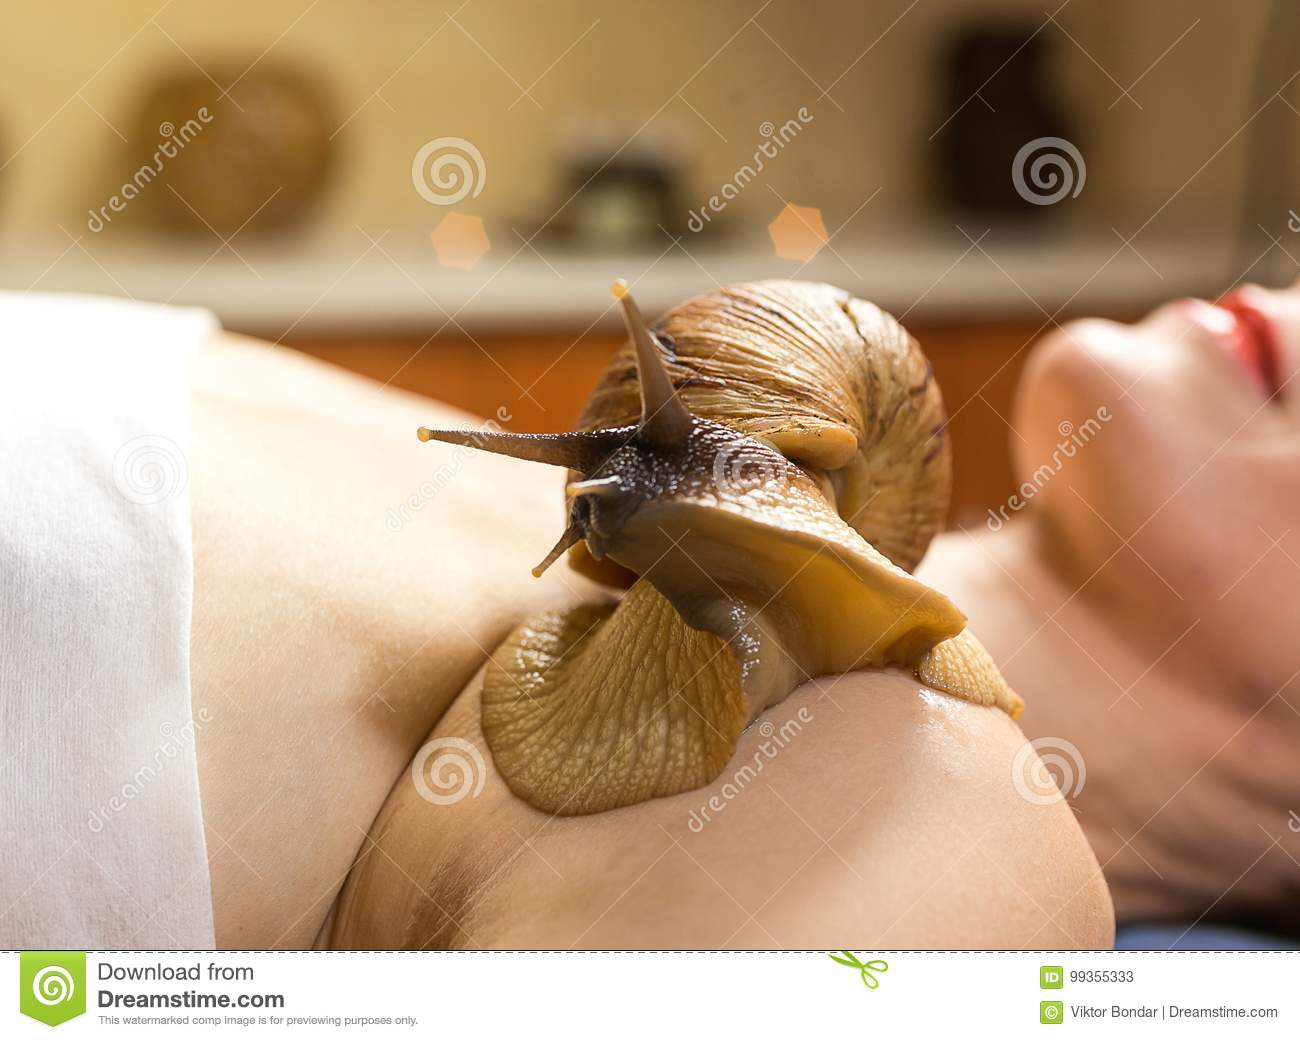 Achatina snails in cosmetology: how to use 99